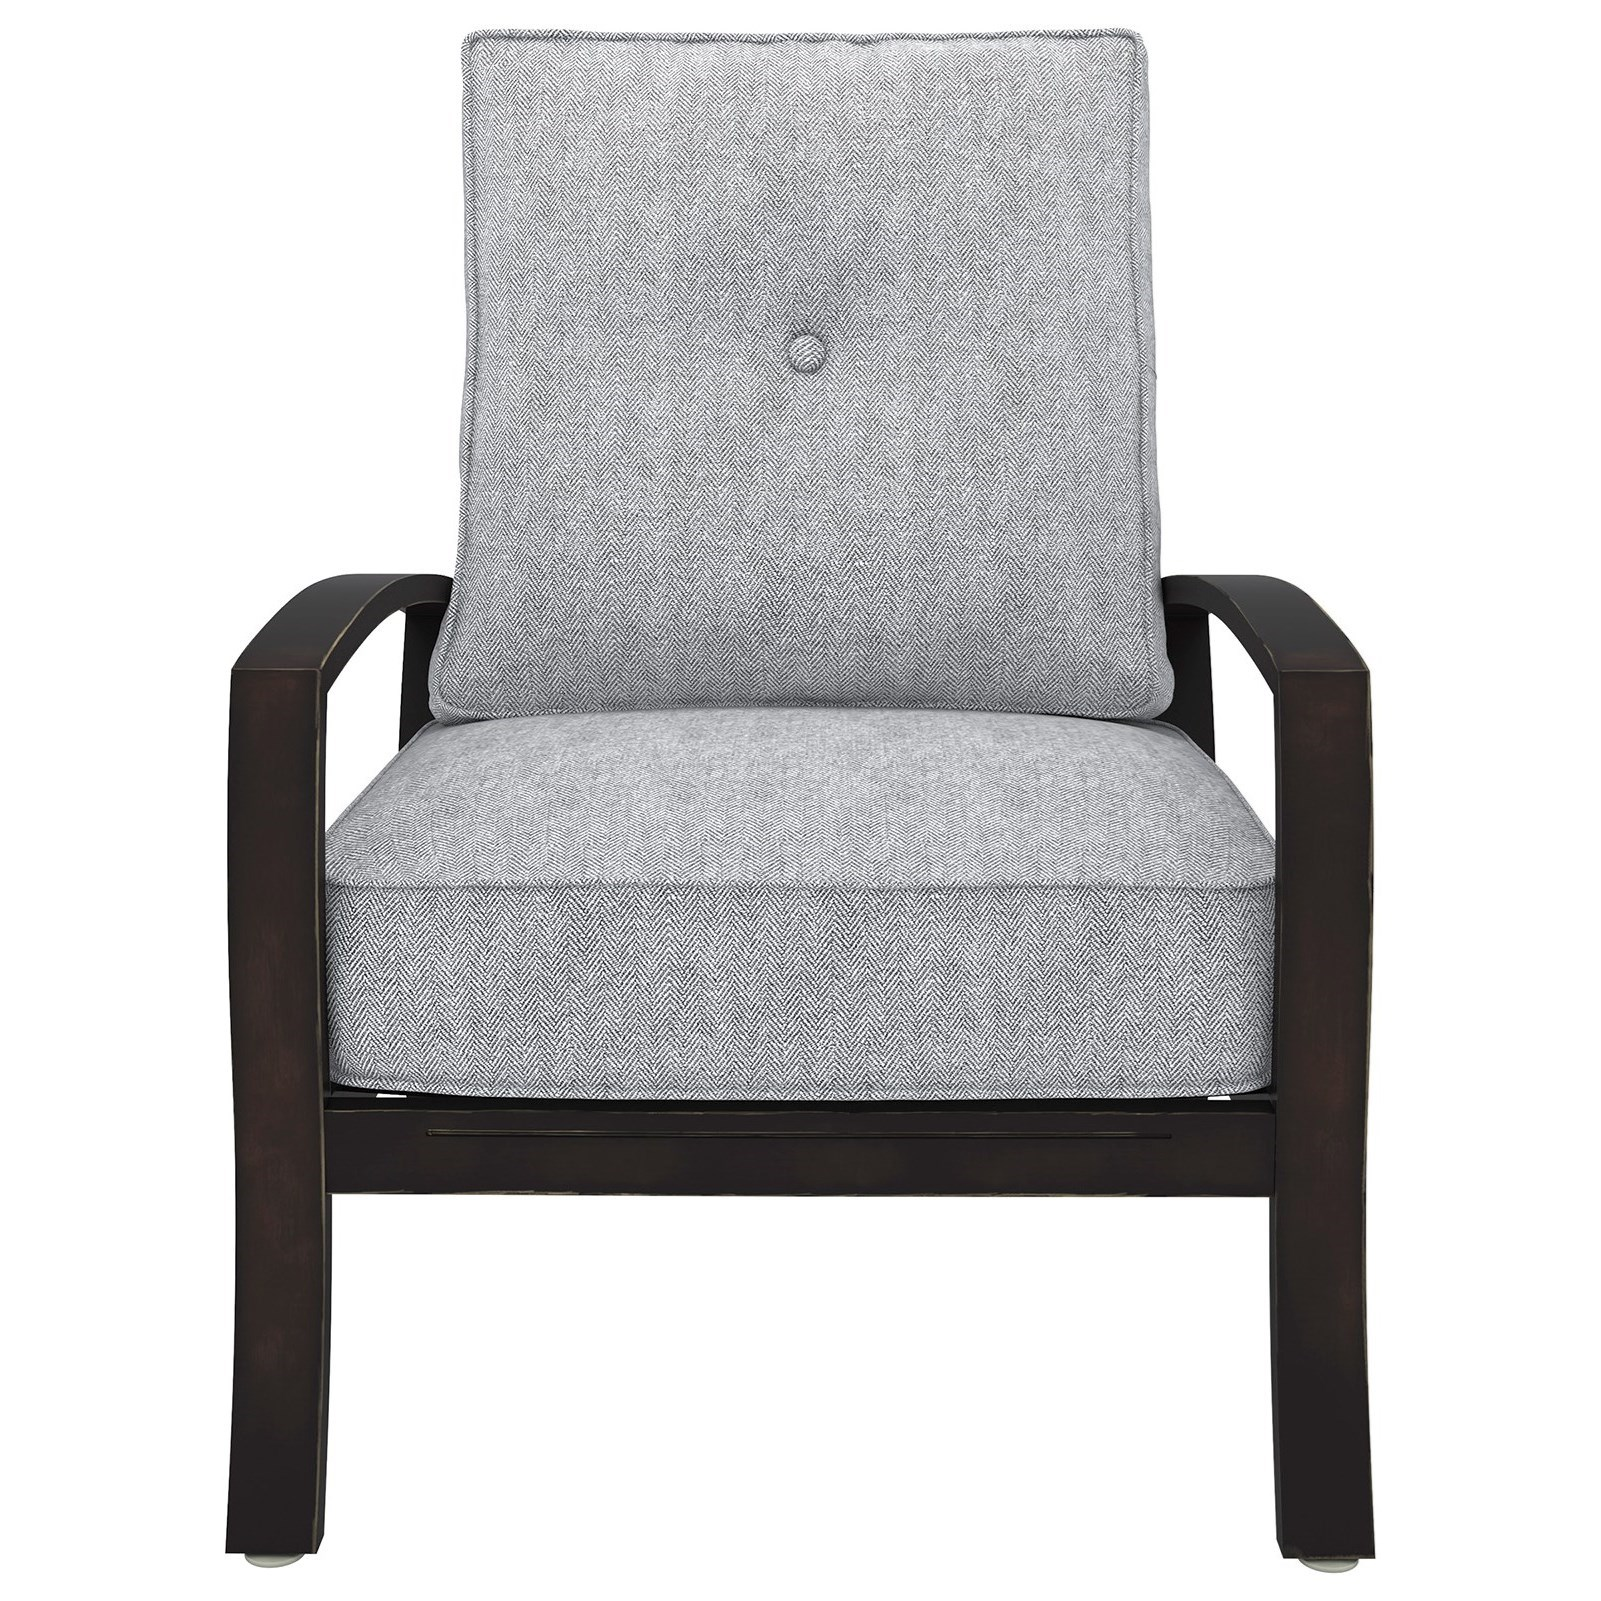 Signature Design by Ashley Castle Island Lounge Chair with Cushion - Item Number: P414-820